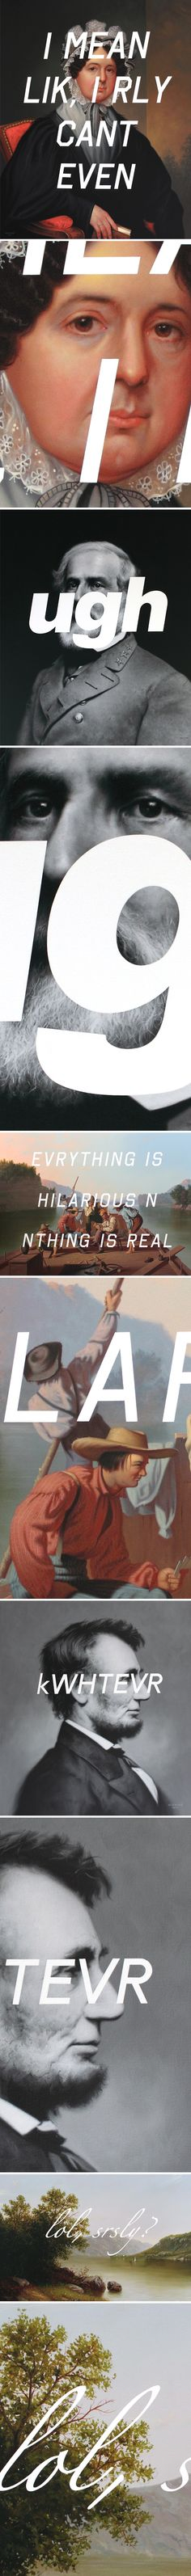 The Jealous Curator /// curated contemporary art /// shawn huckins